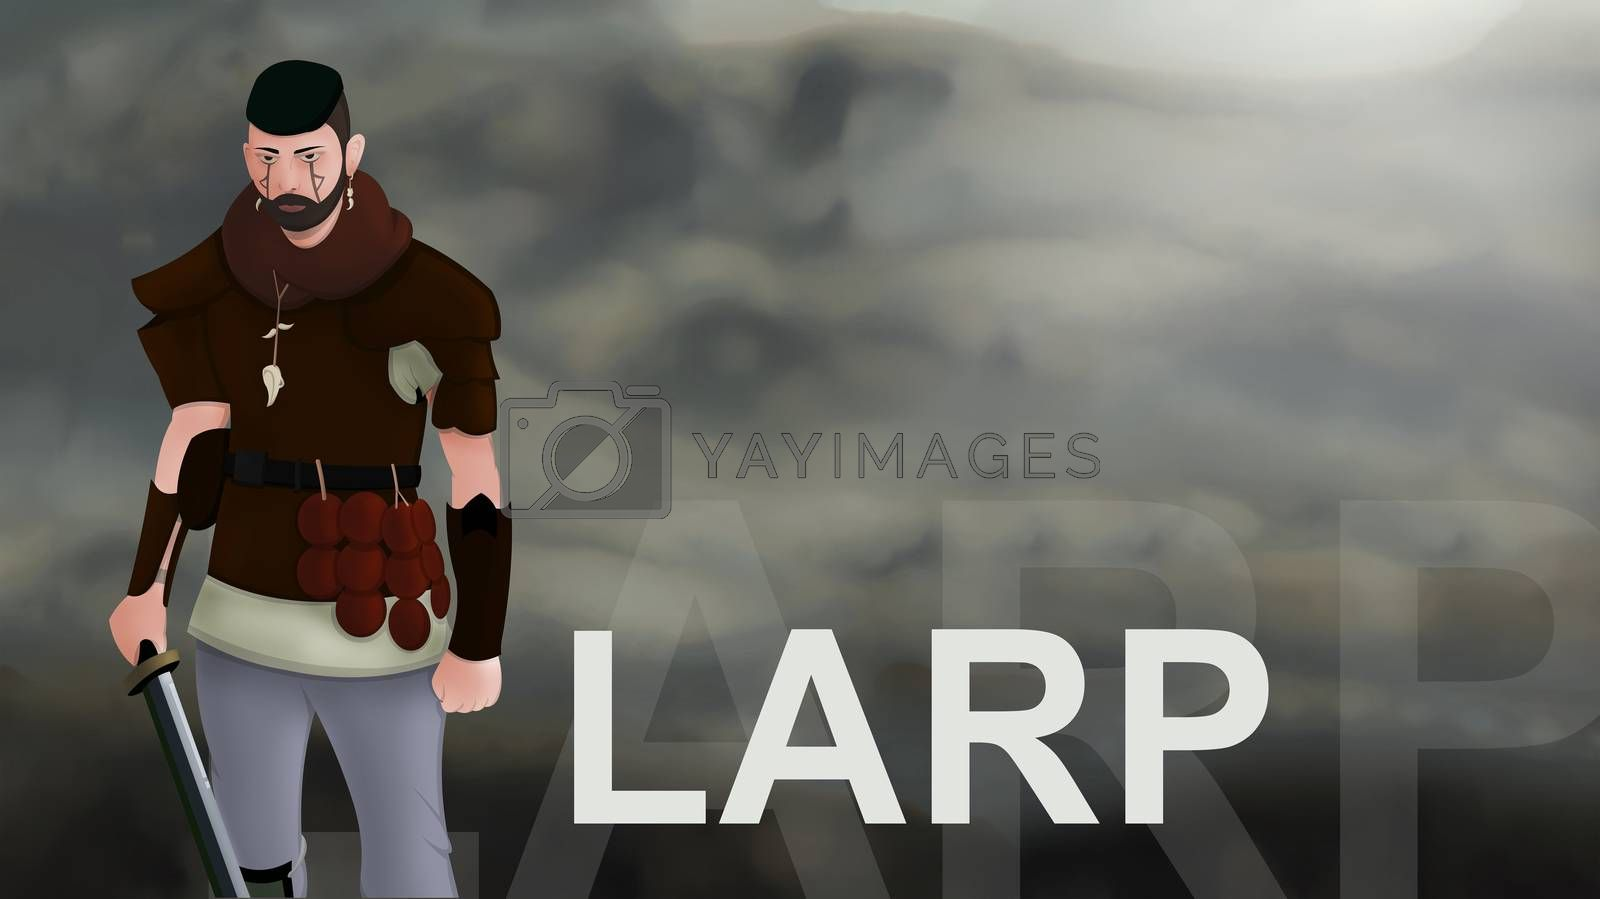 Larp word text with Warrior armed with sword viking and leather armor on a gradient background. With copyspace for your text. Larp role play. Battle and medieval war. battlefield. Illustration 2d